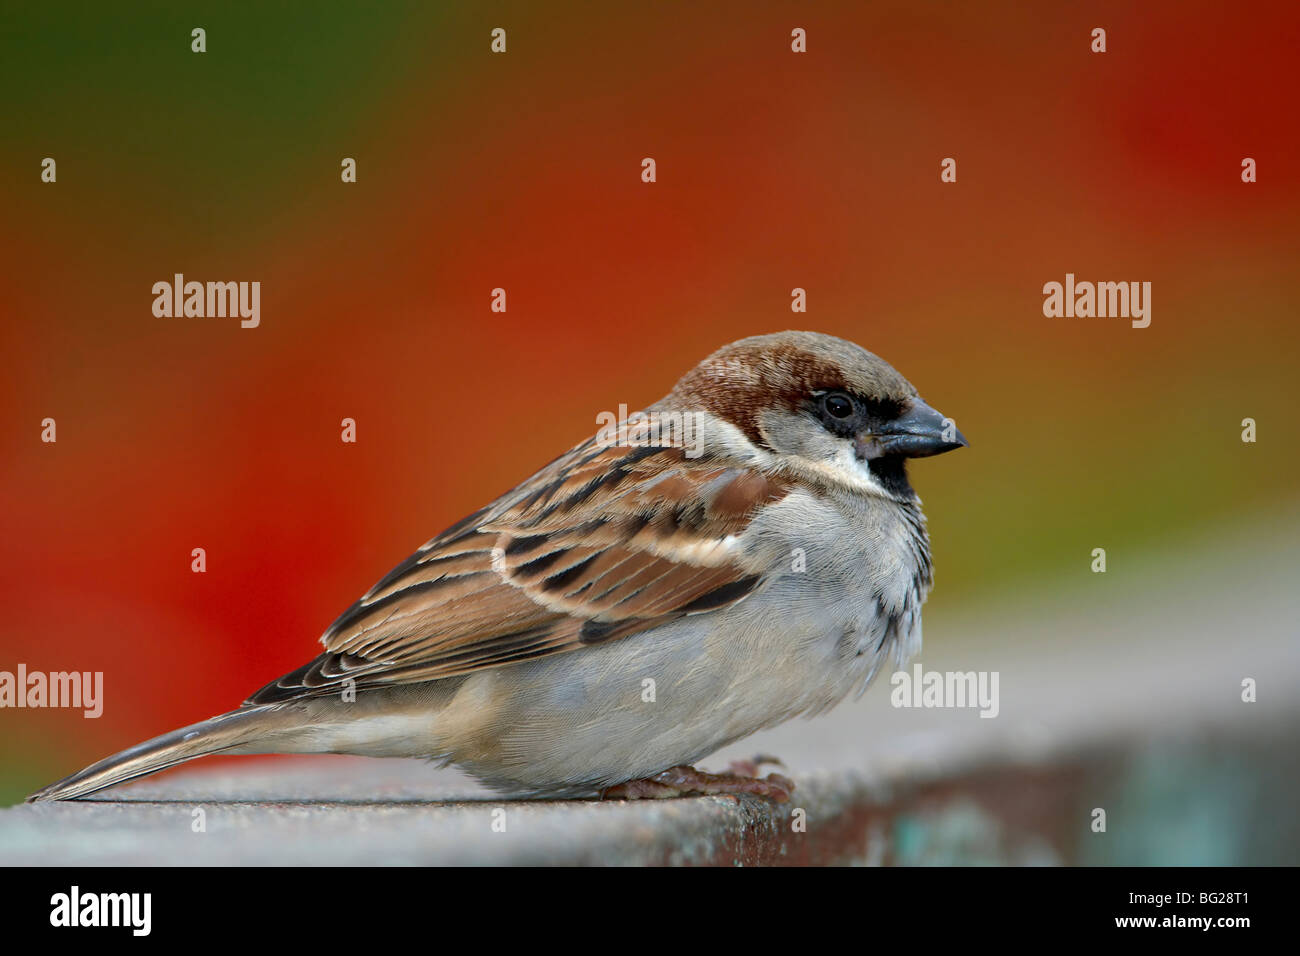 Cute male House Sparrow with red background on wall - Stock Image